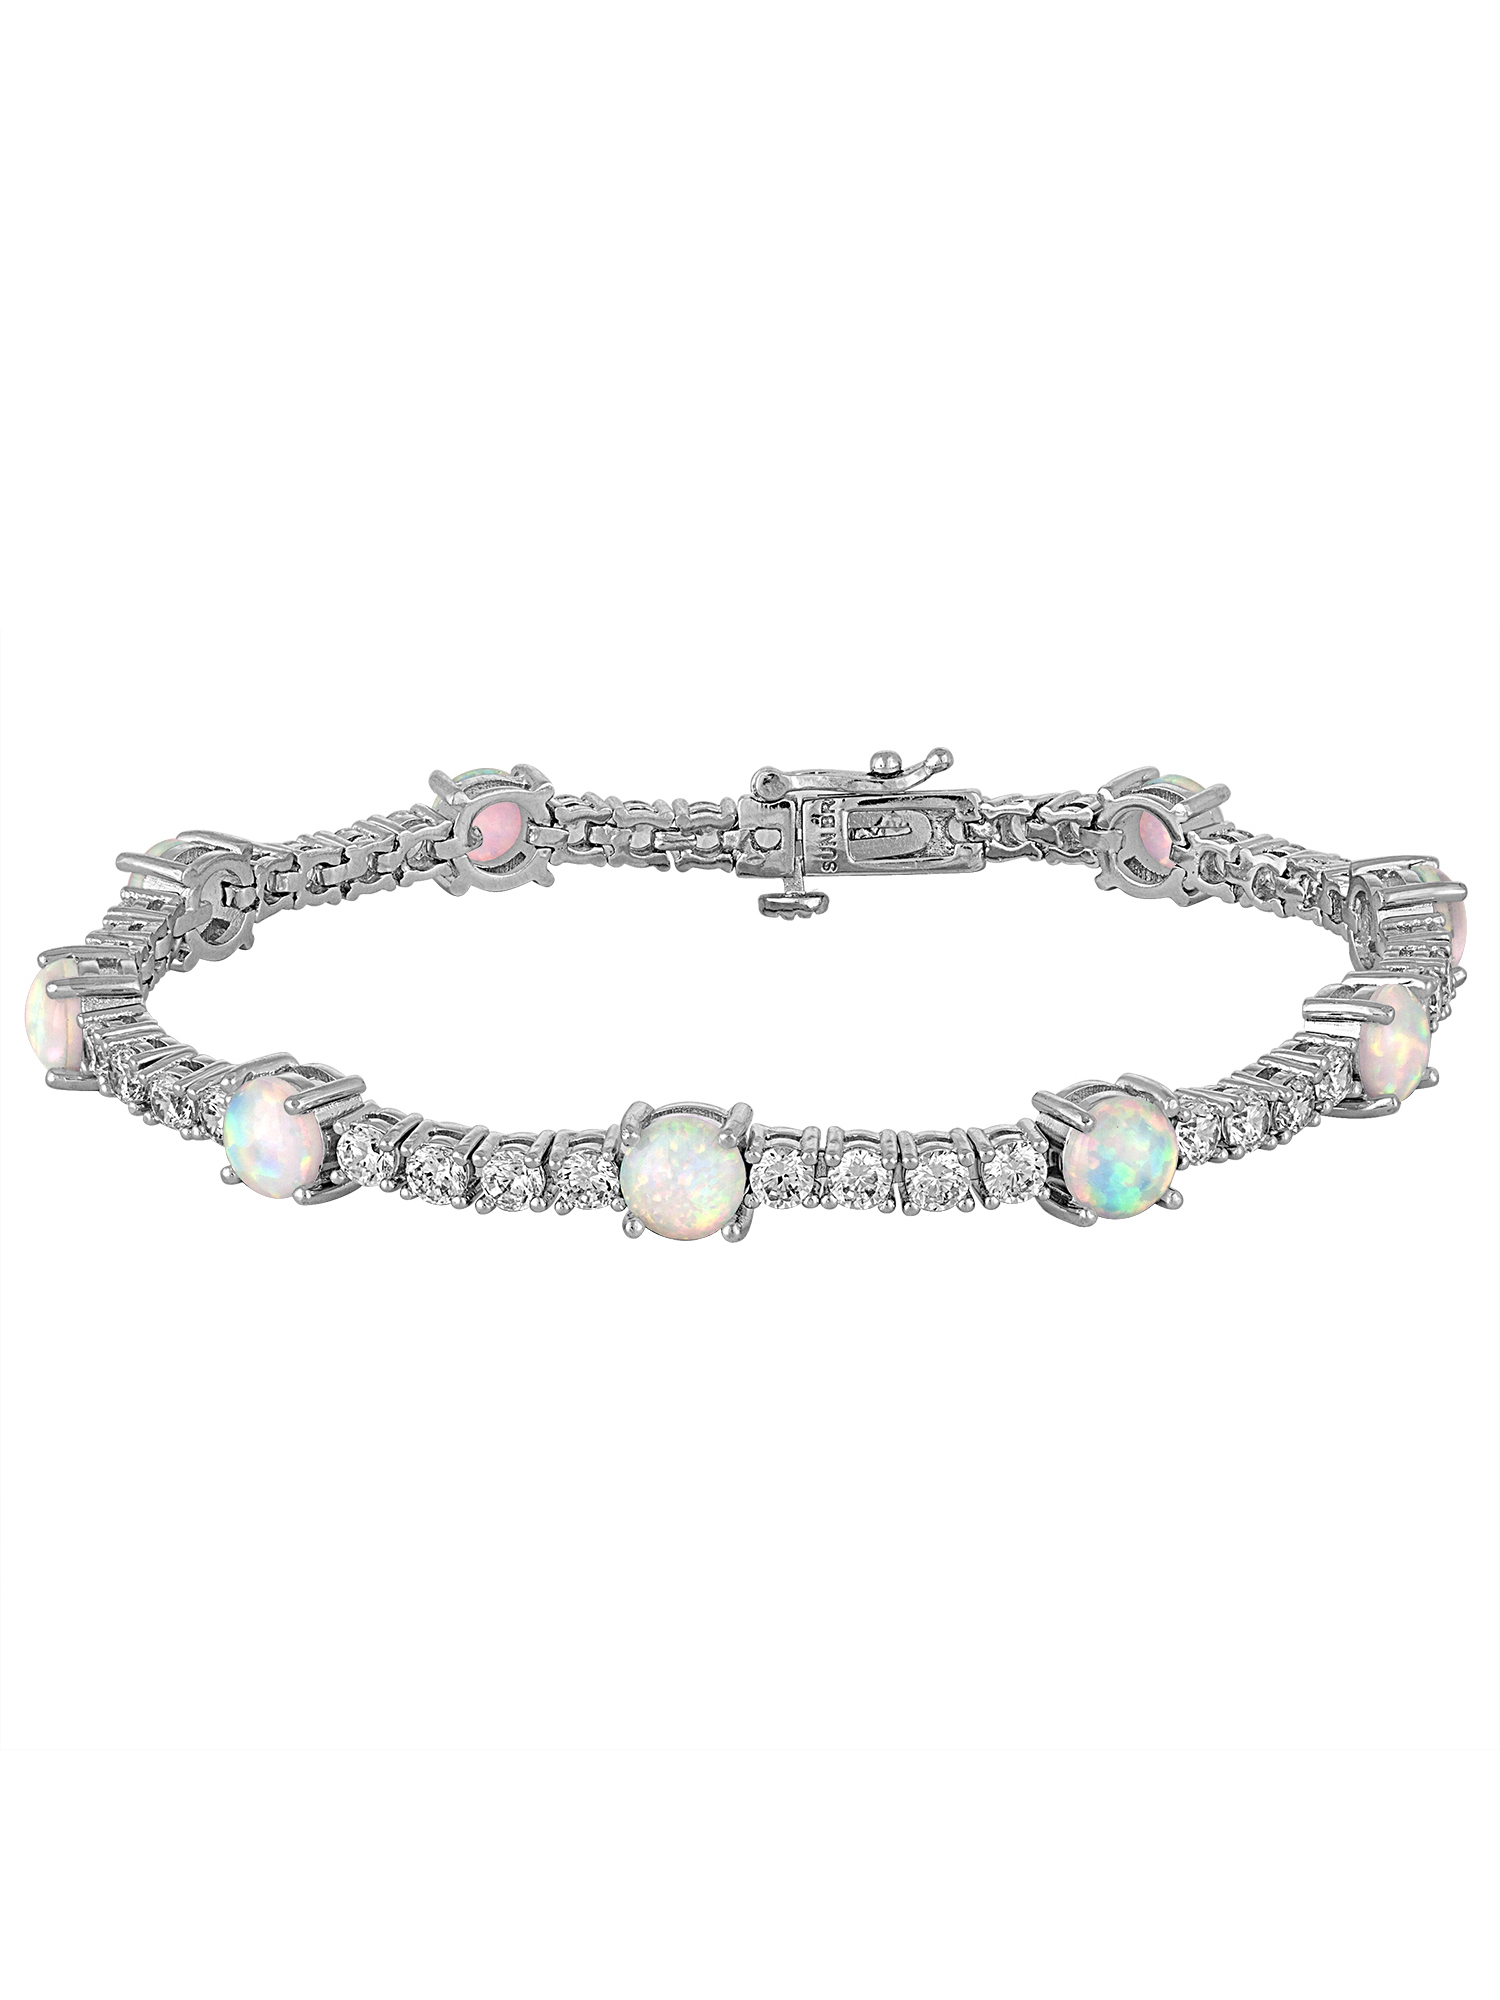 Gemspirations Sterling Silver Plated Simulated Opal with CZ Accents Tennis Bracelet, 7.25""